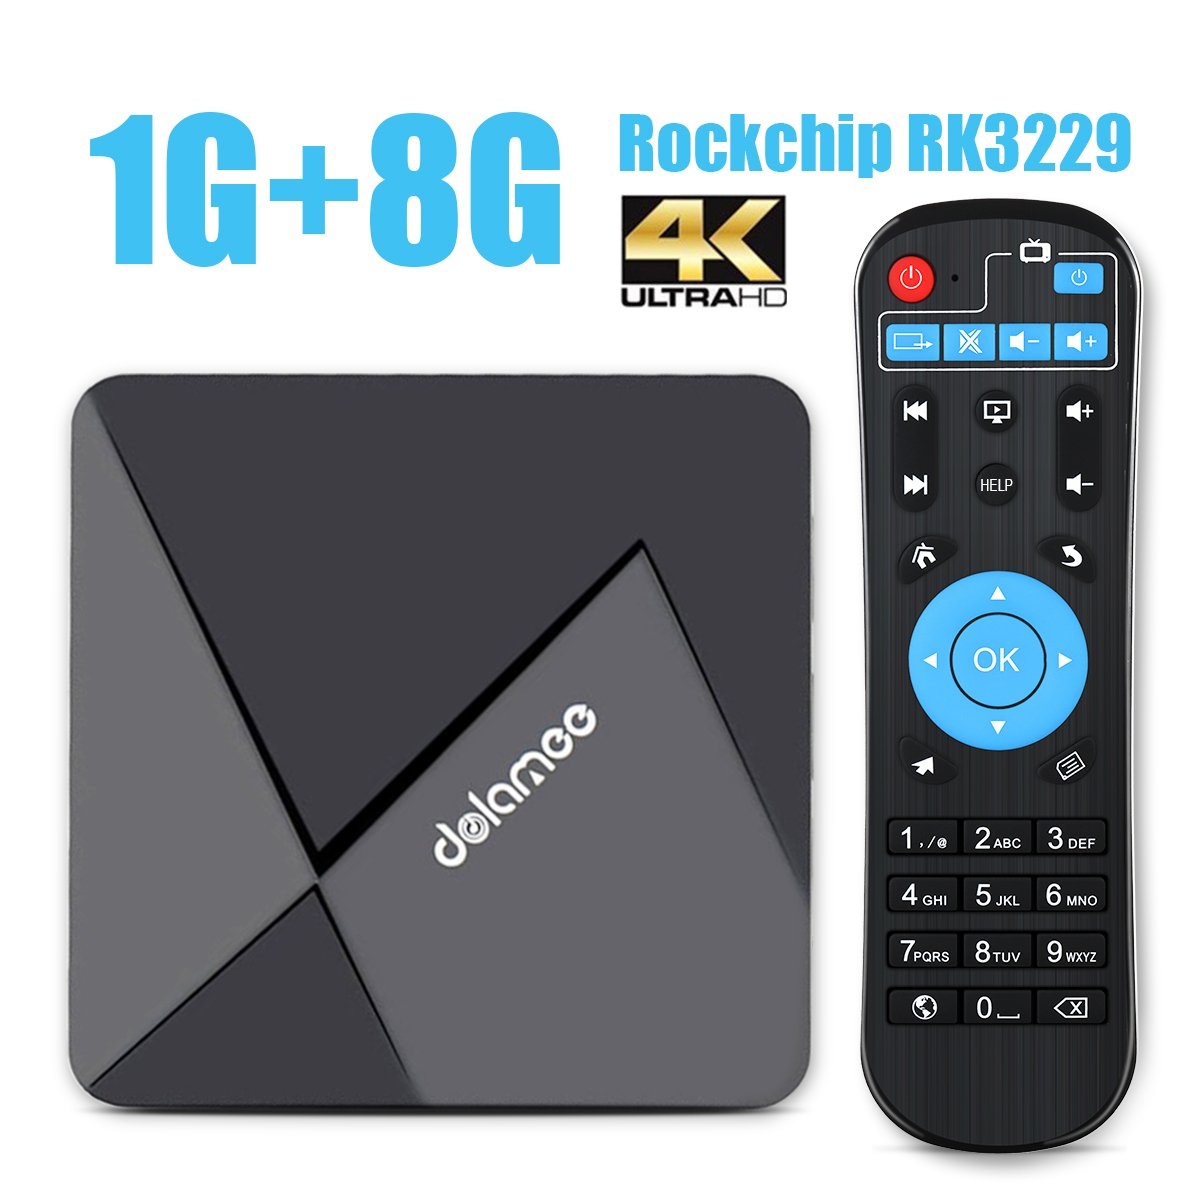 DOLAMEE D5 Android 6 0 TV Box Rockchip RK3229 Quad Core CPU Mini PC WiFi 4K  HD Smart Player